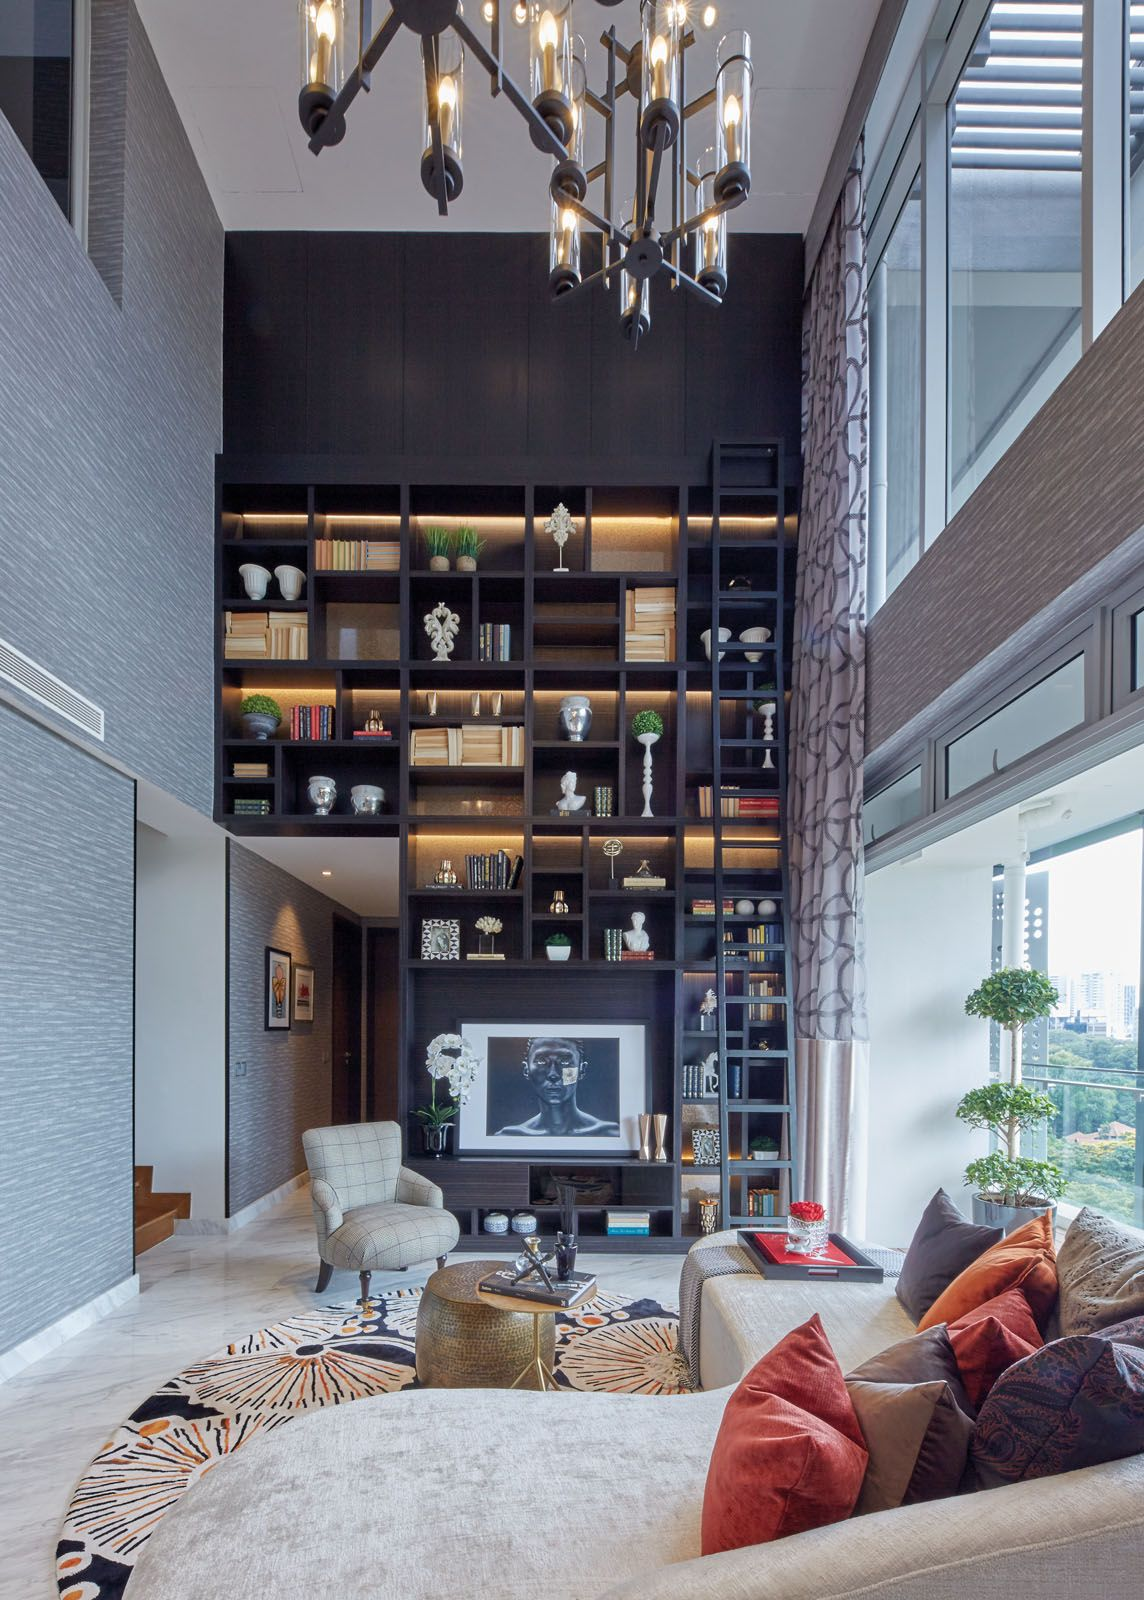 Home Tour: A Modern Penthouse With Brilliant Balconies